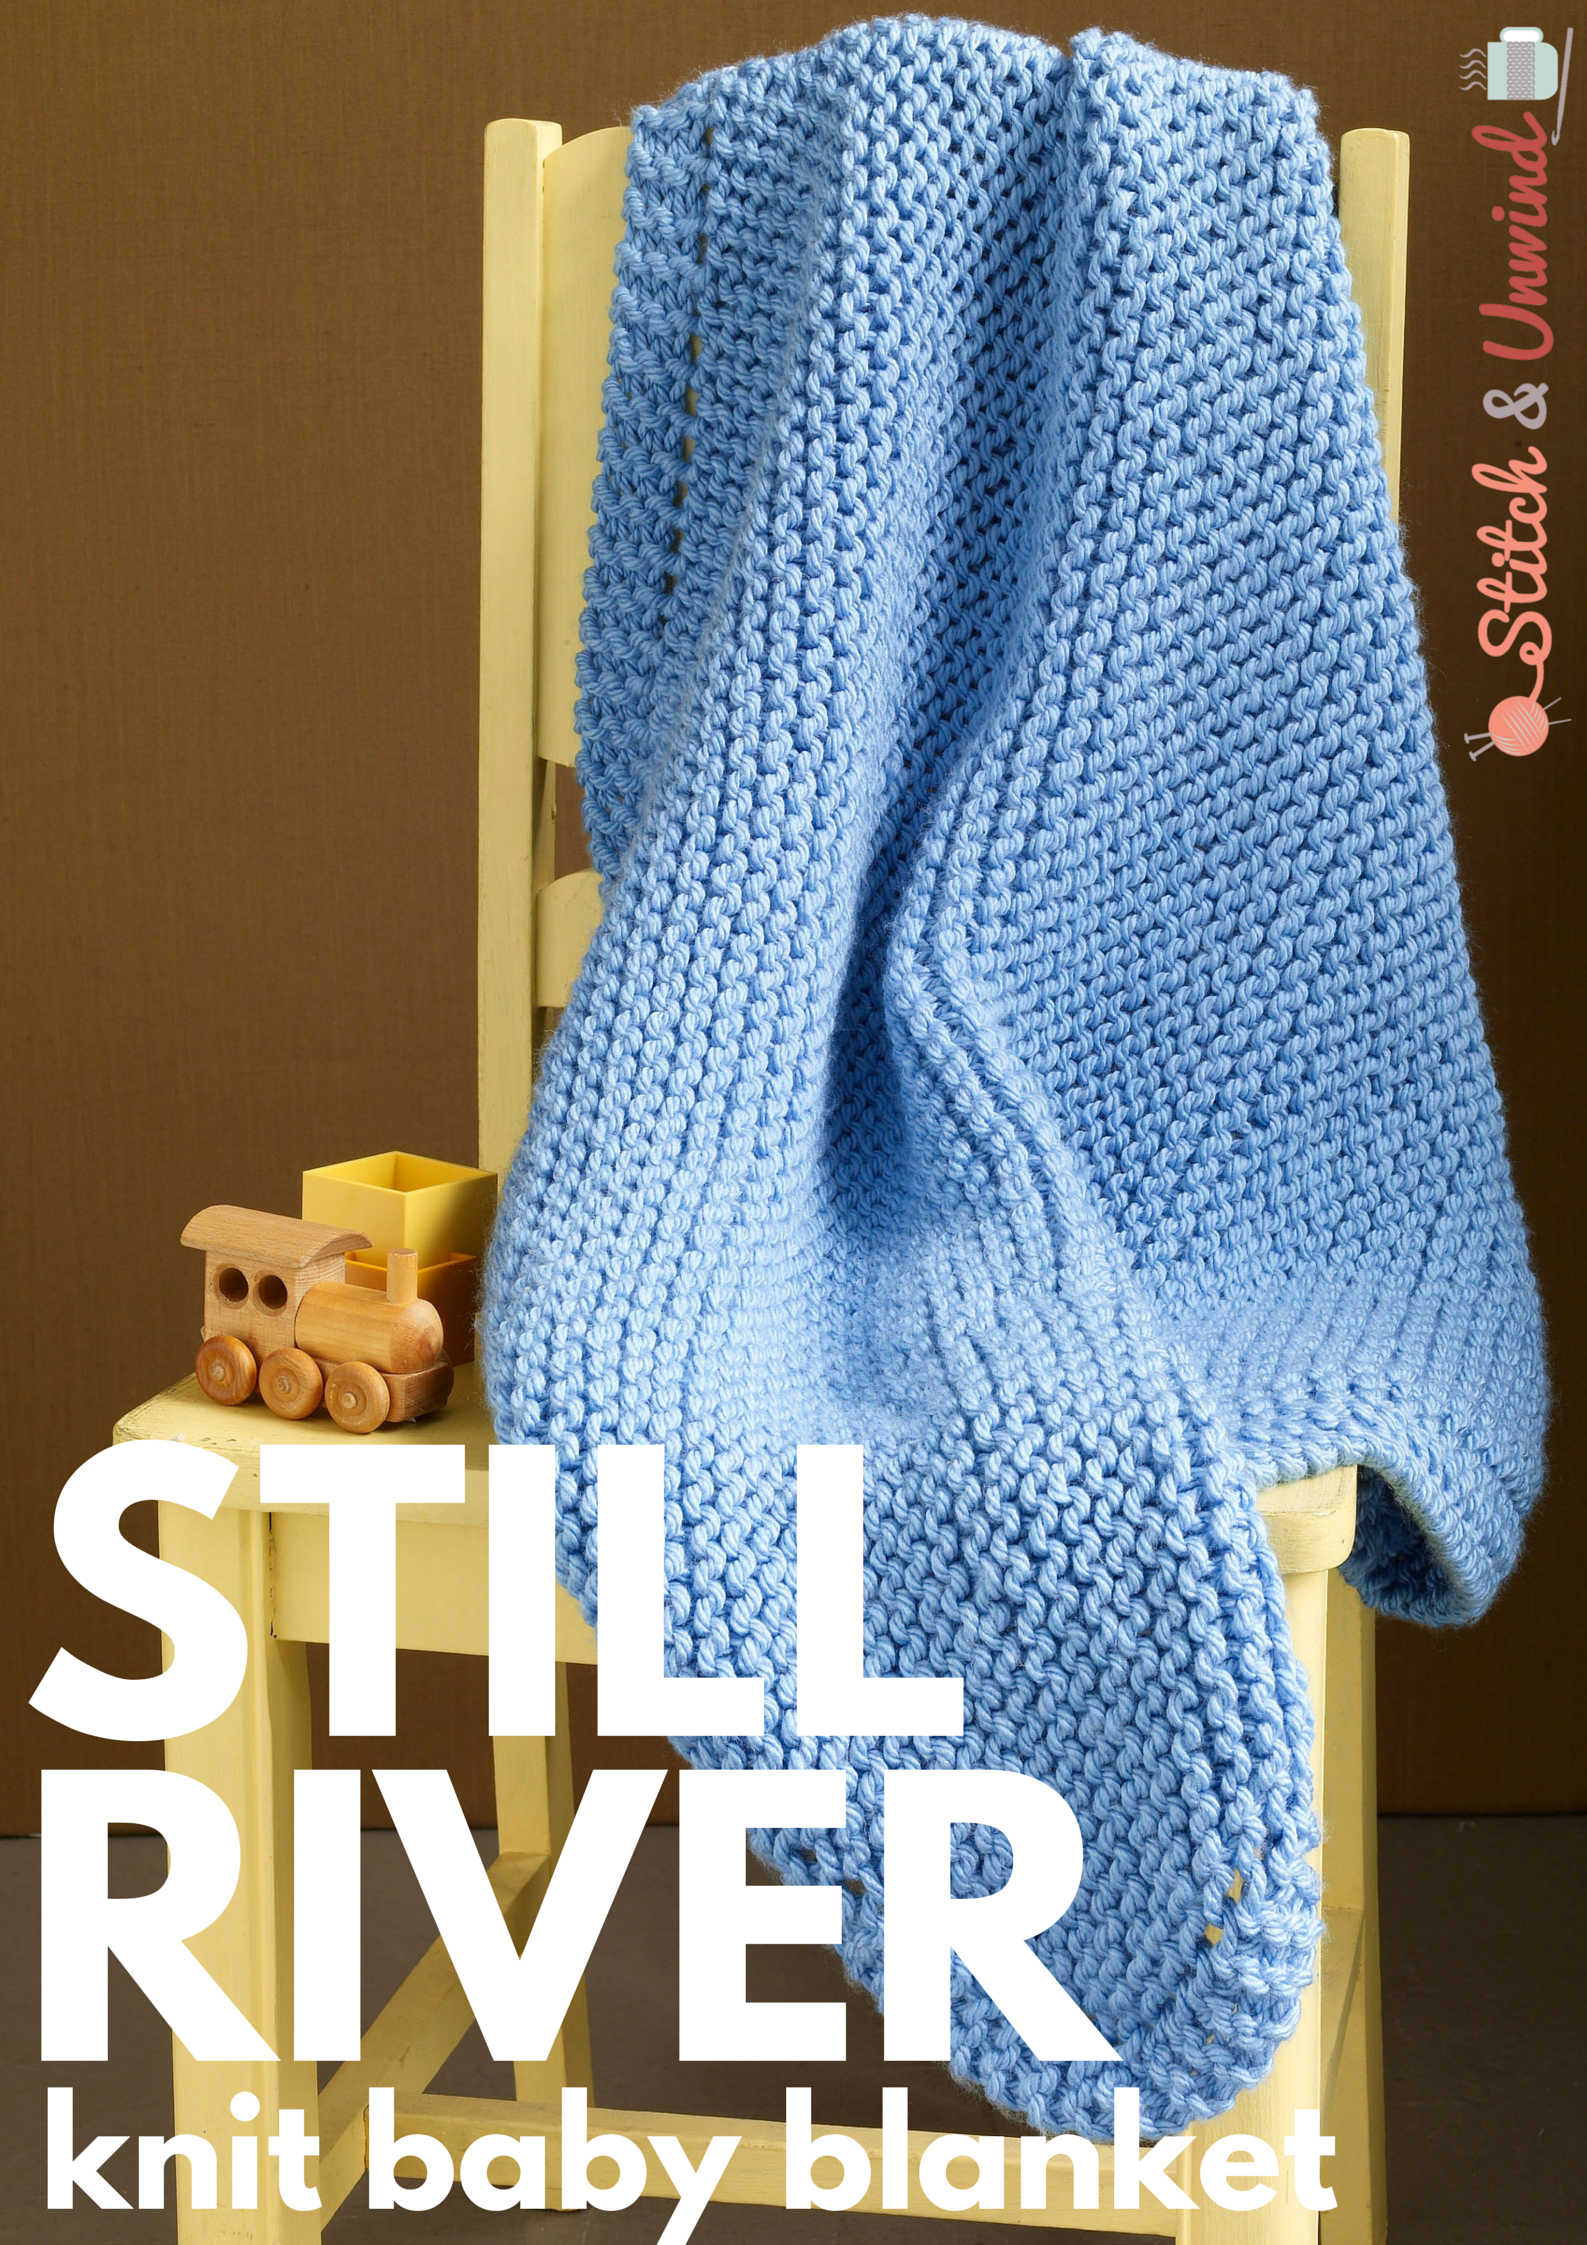 Still River Knit Baby Blanket